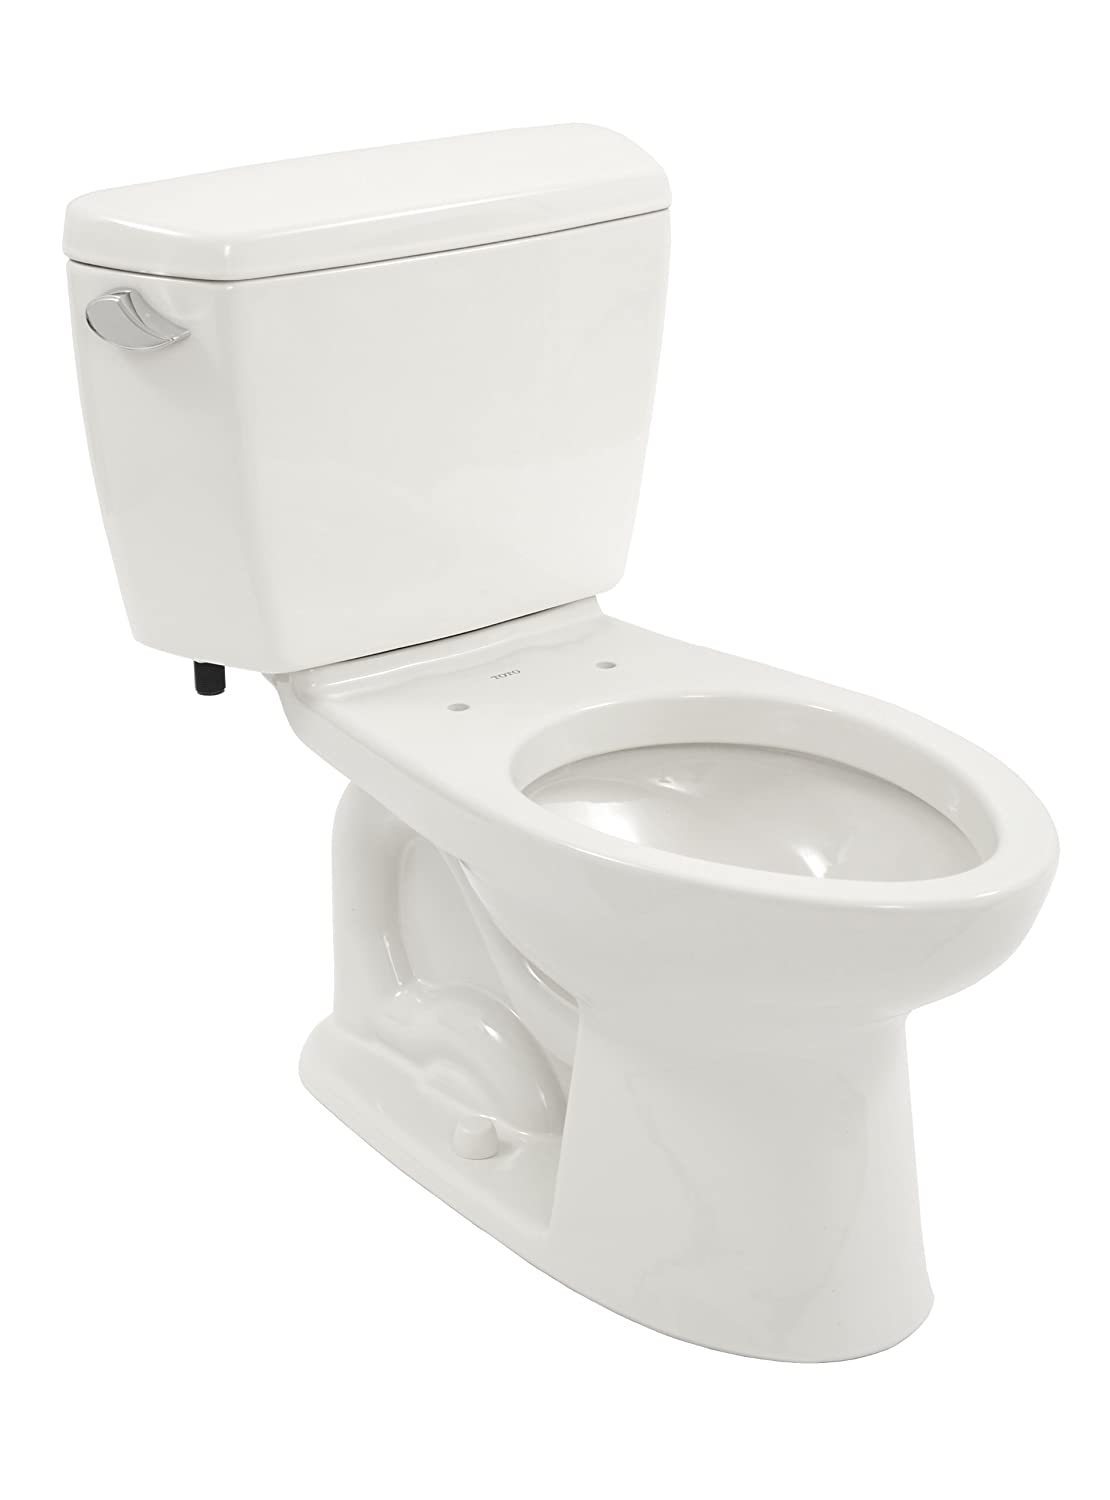 Toto Drake Elongated Bowl and Tank, Cotton White, Two-Piece Toilets ...